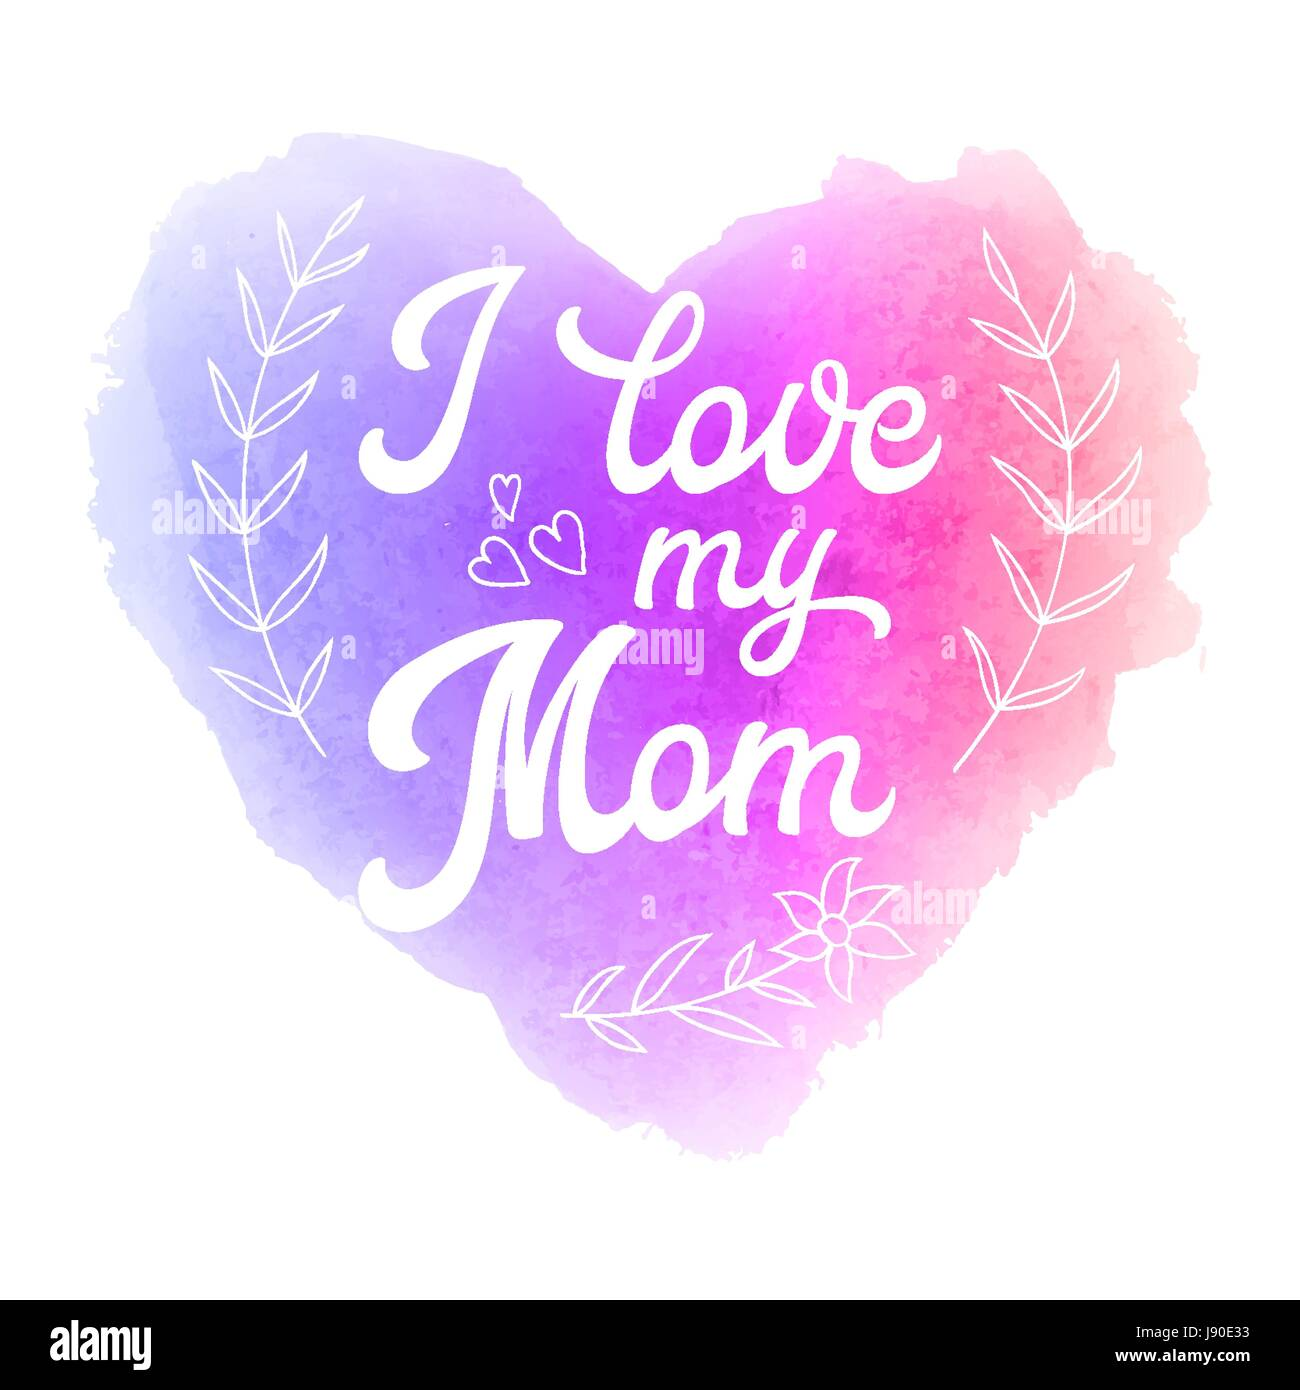 I love my mom greeting card with heart and hand lettering text on greeting card with heart and hand lettering text on abstract pink and violet watercolor heart shaped soft background decoration for mothers day design m4hsunfo